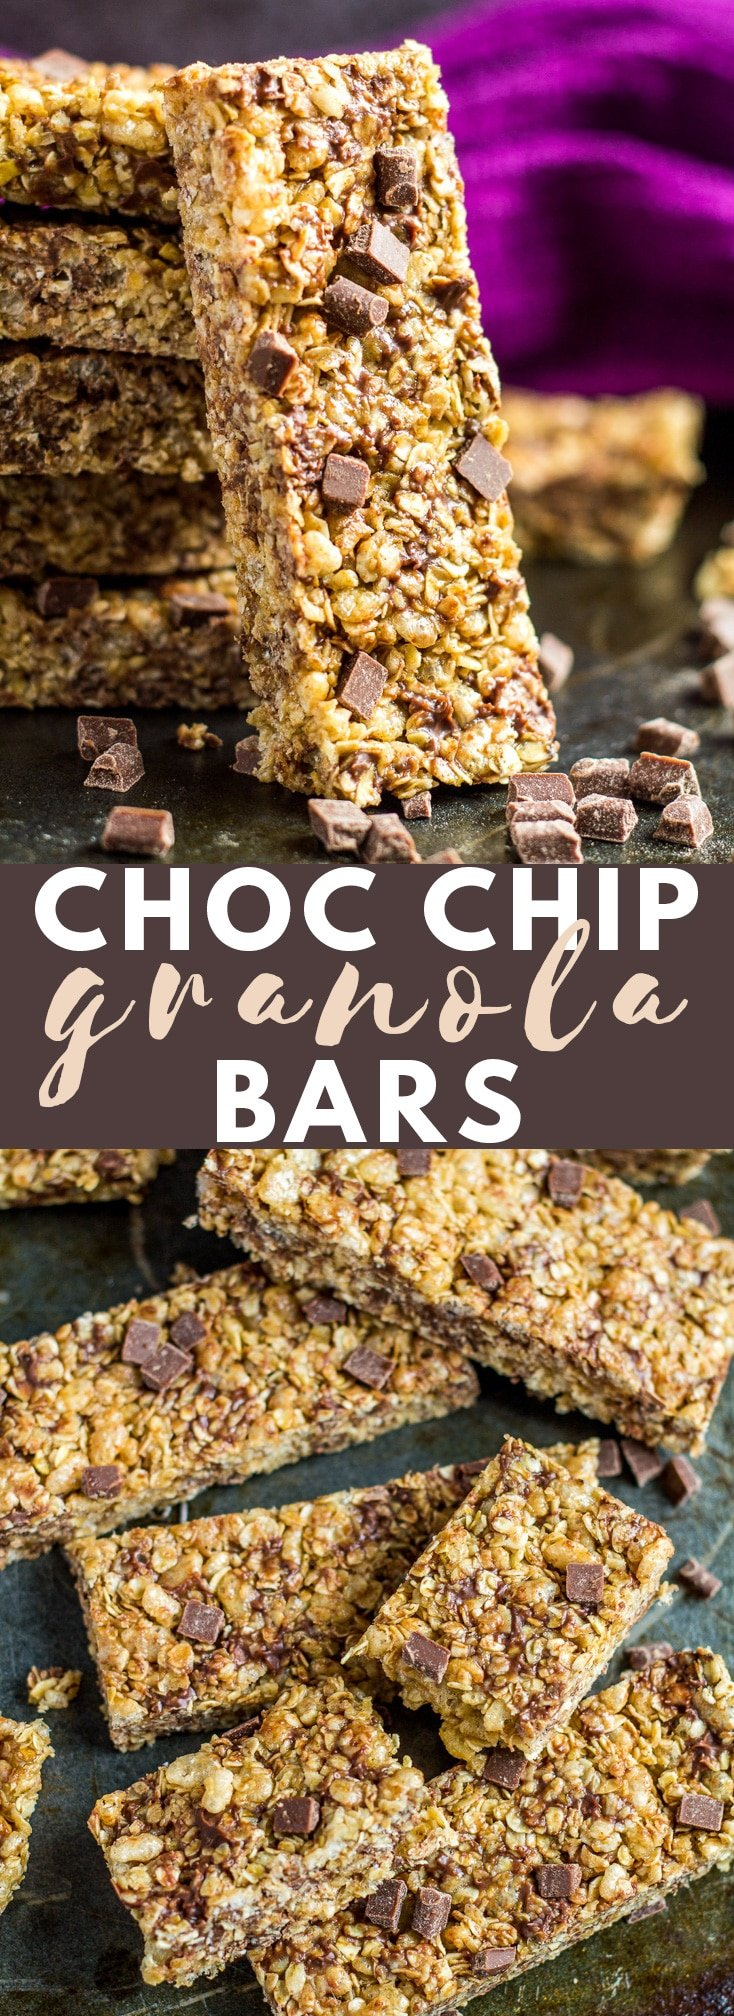 No-Bake Chocolate Chip Granola Bars- These deliciously chewy NO-BAKE bars are stuffed full of chocolate chips and spiced with a hint of cinnamon! #chocolatechip #granolabars #recipe